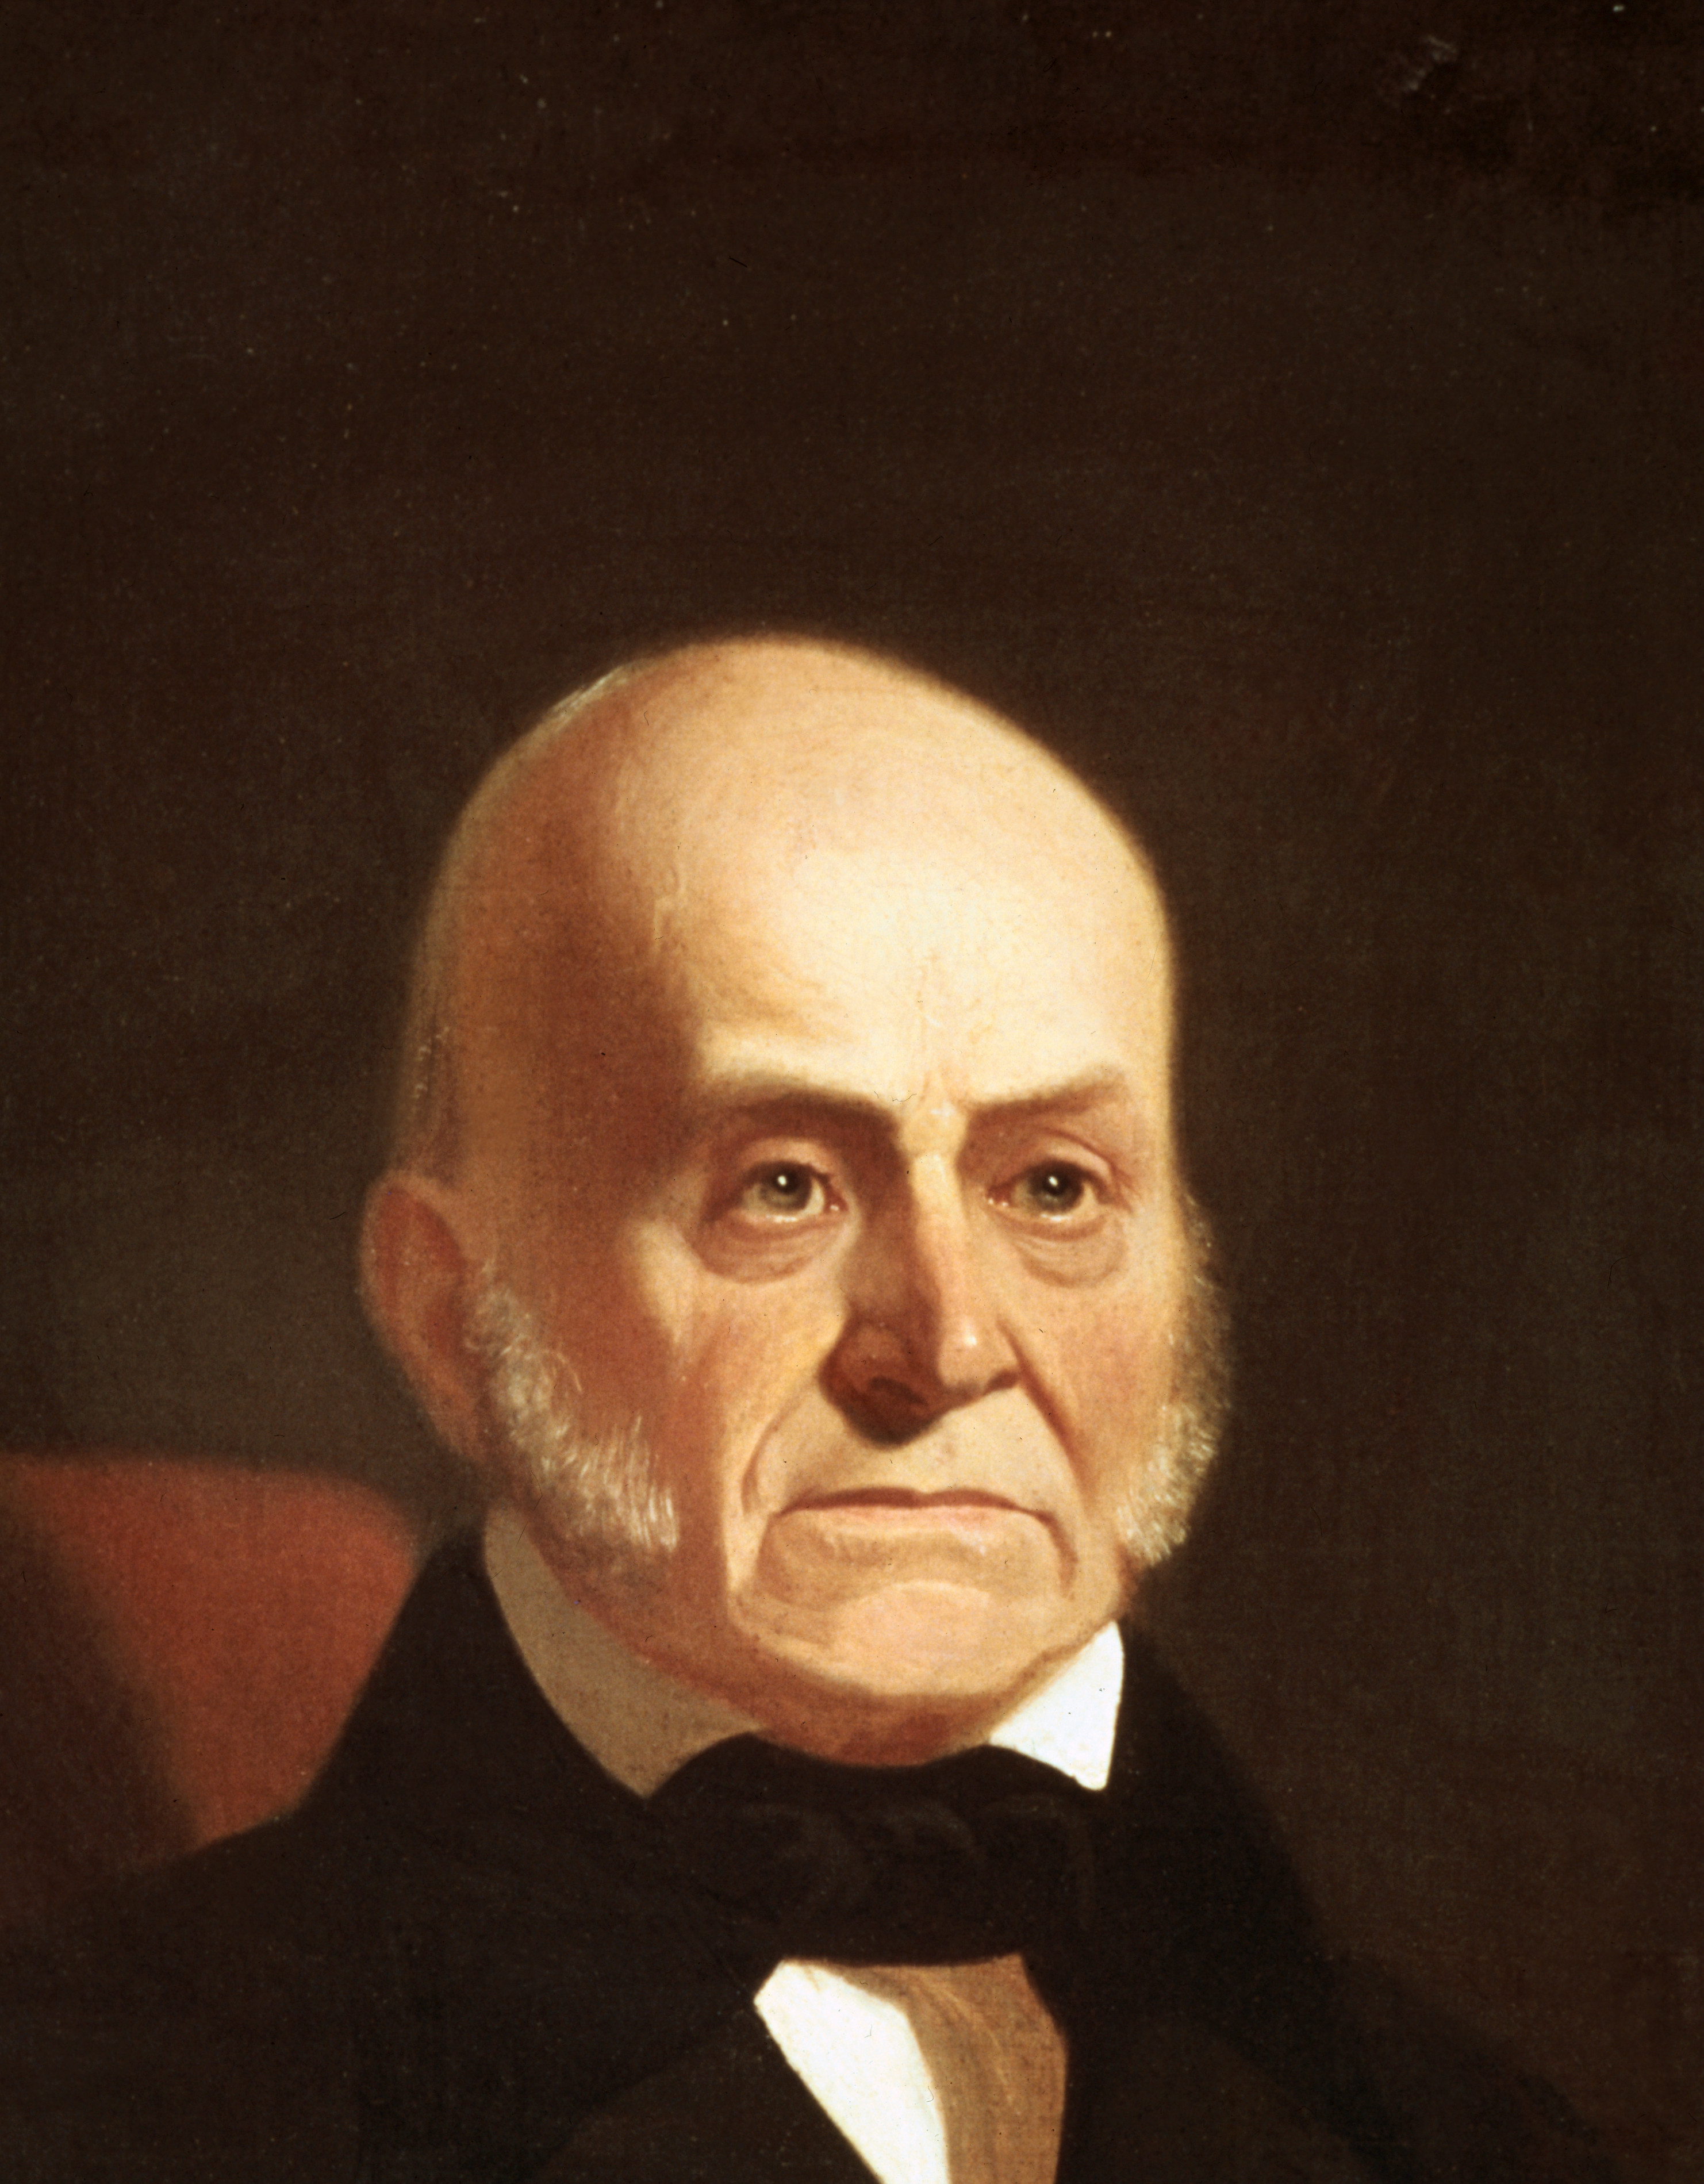 John Quincy Adams Biography: Sixth President of the United States